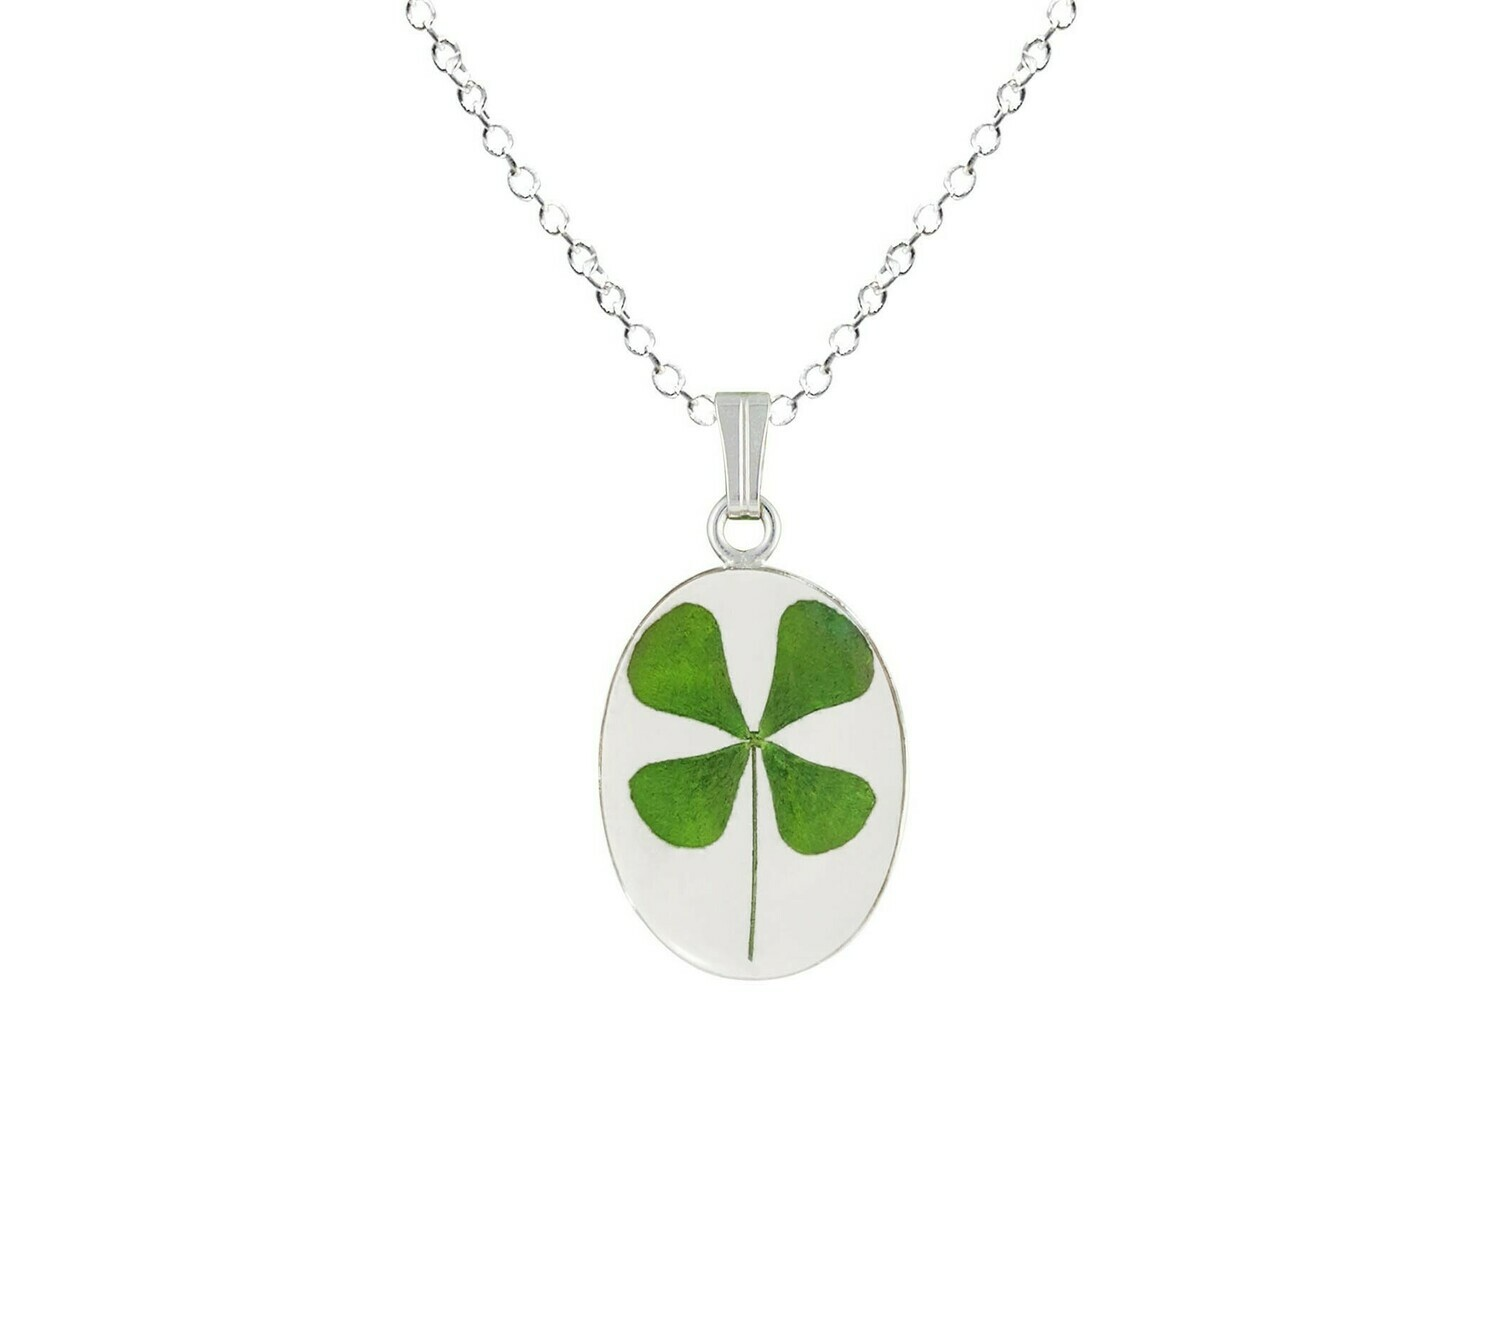 Clover Necklace, Small Oval, Transparent